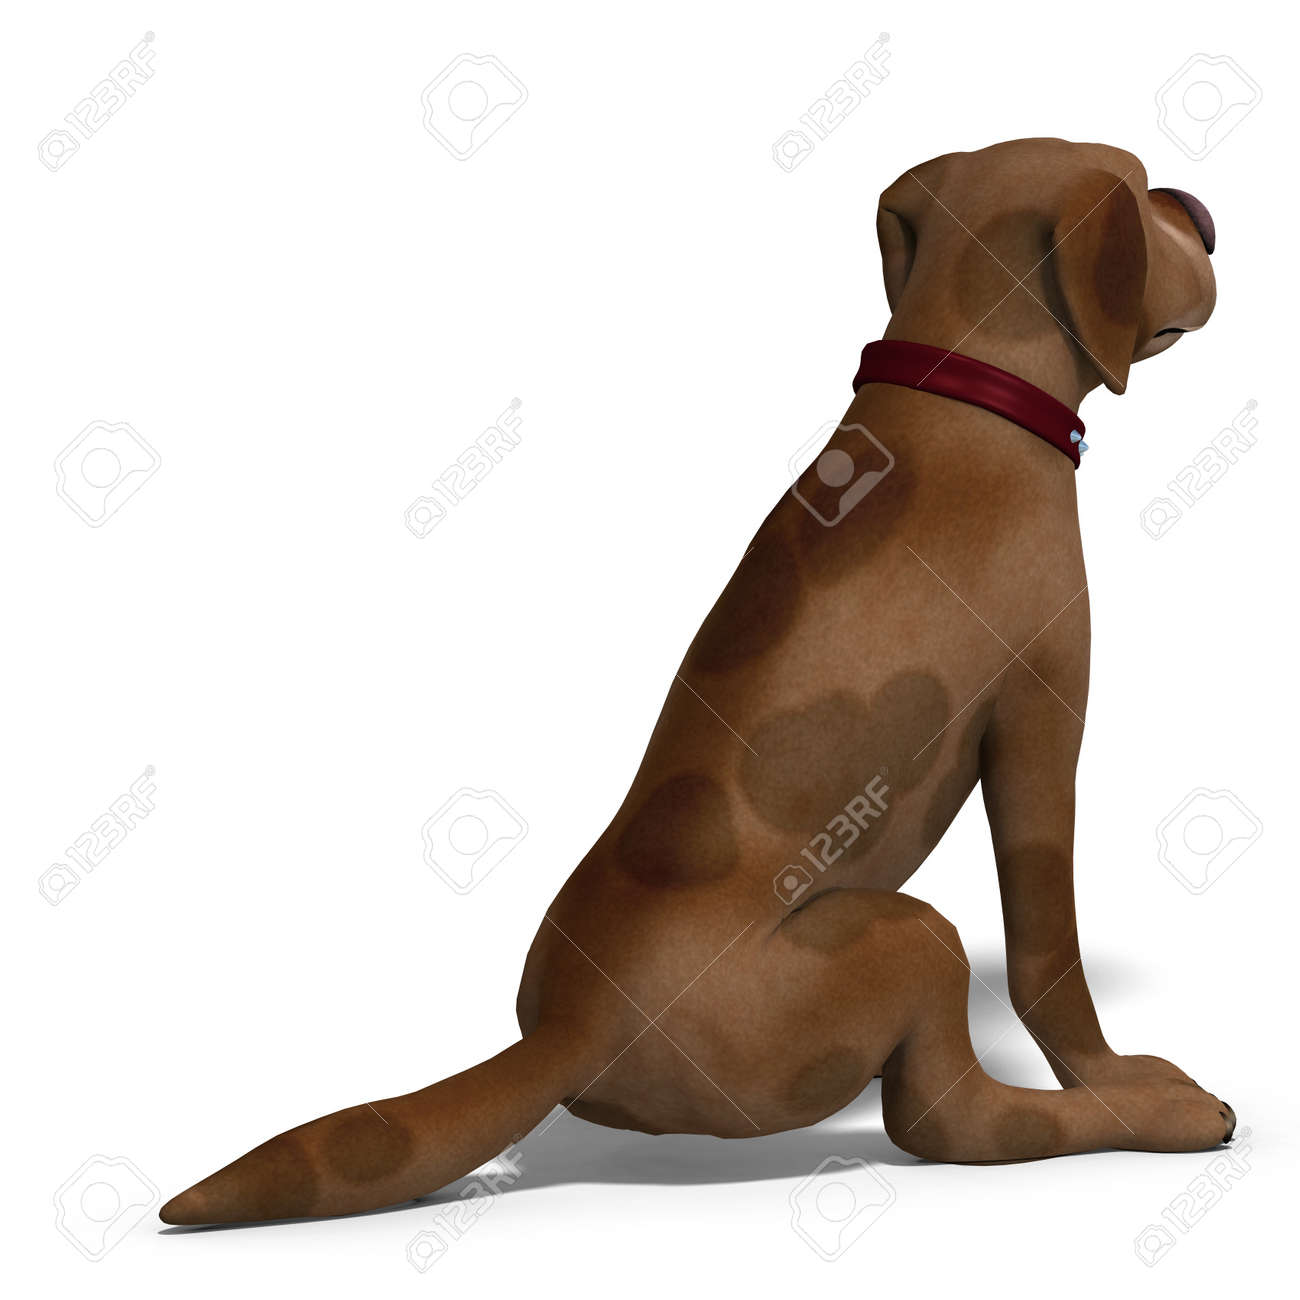 the cute and funny toon dog is a bit silly. Stock Photo - 7218944